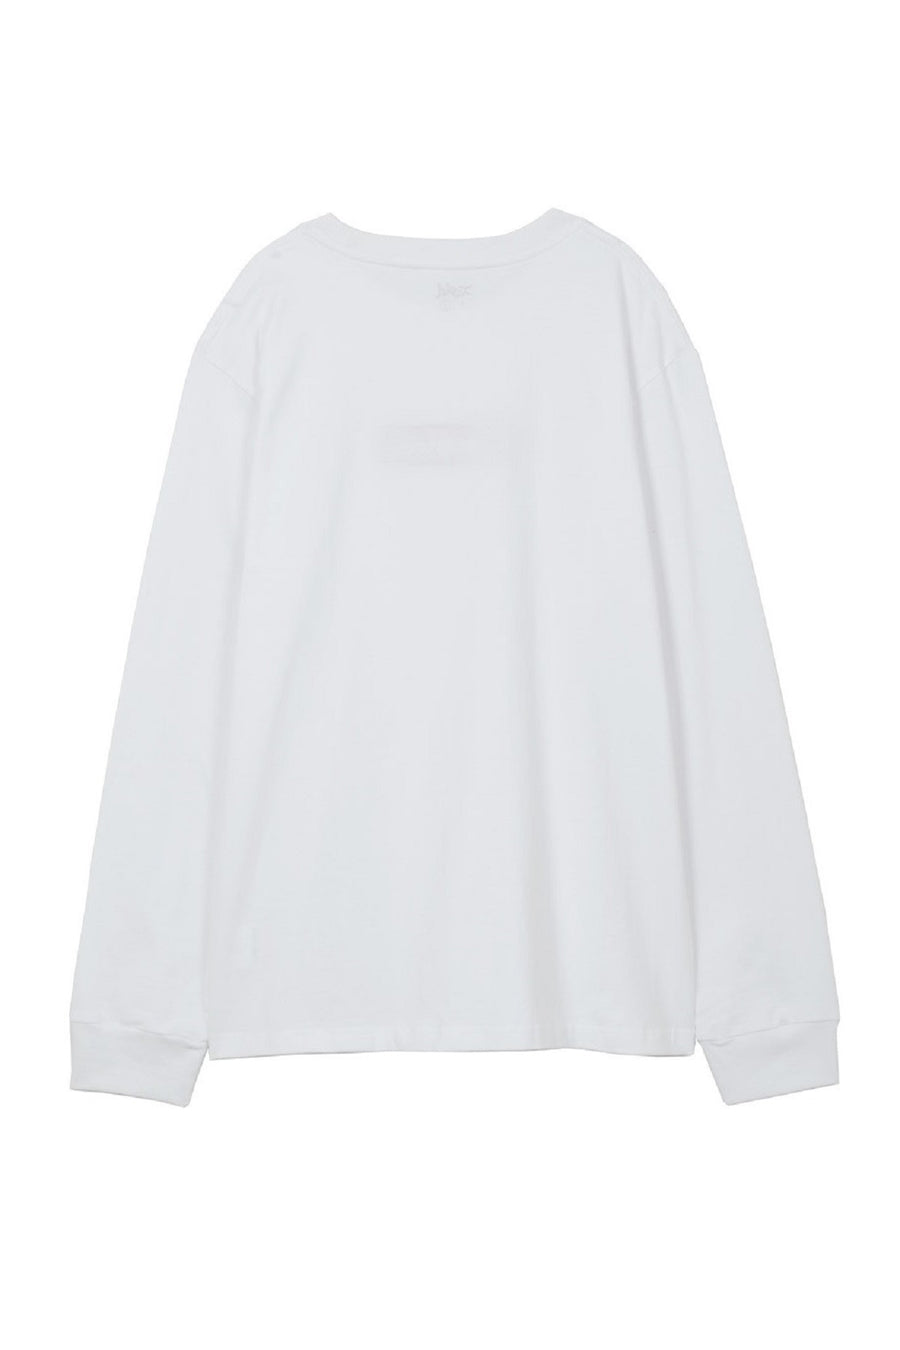 EMBROIDERED BOX LOGO L/S REGULAR TEE - X-Girl